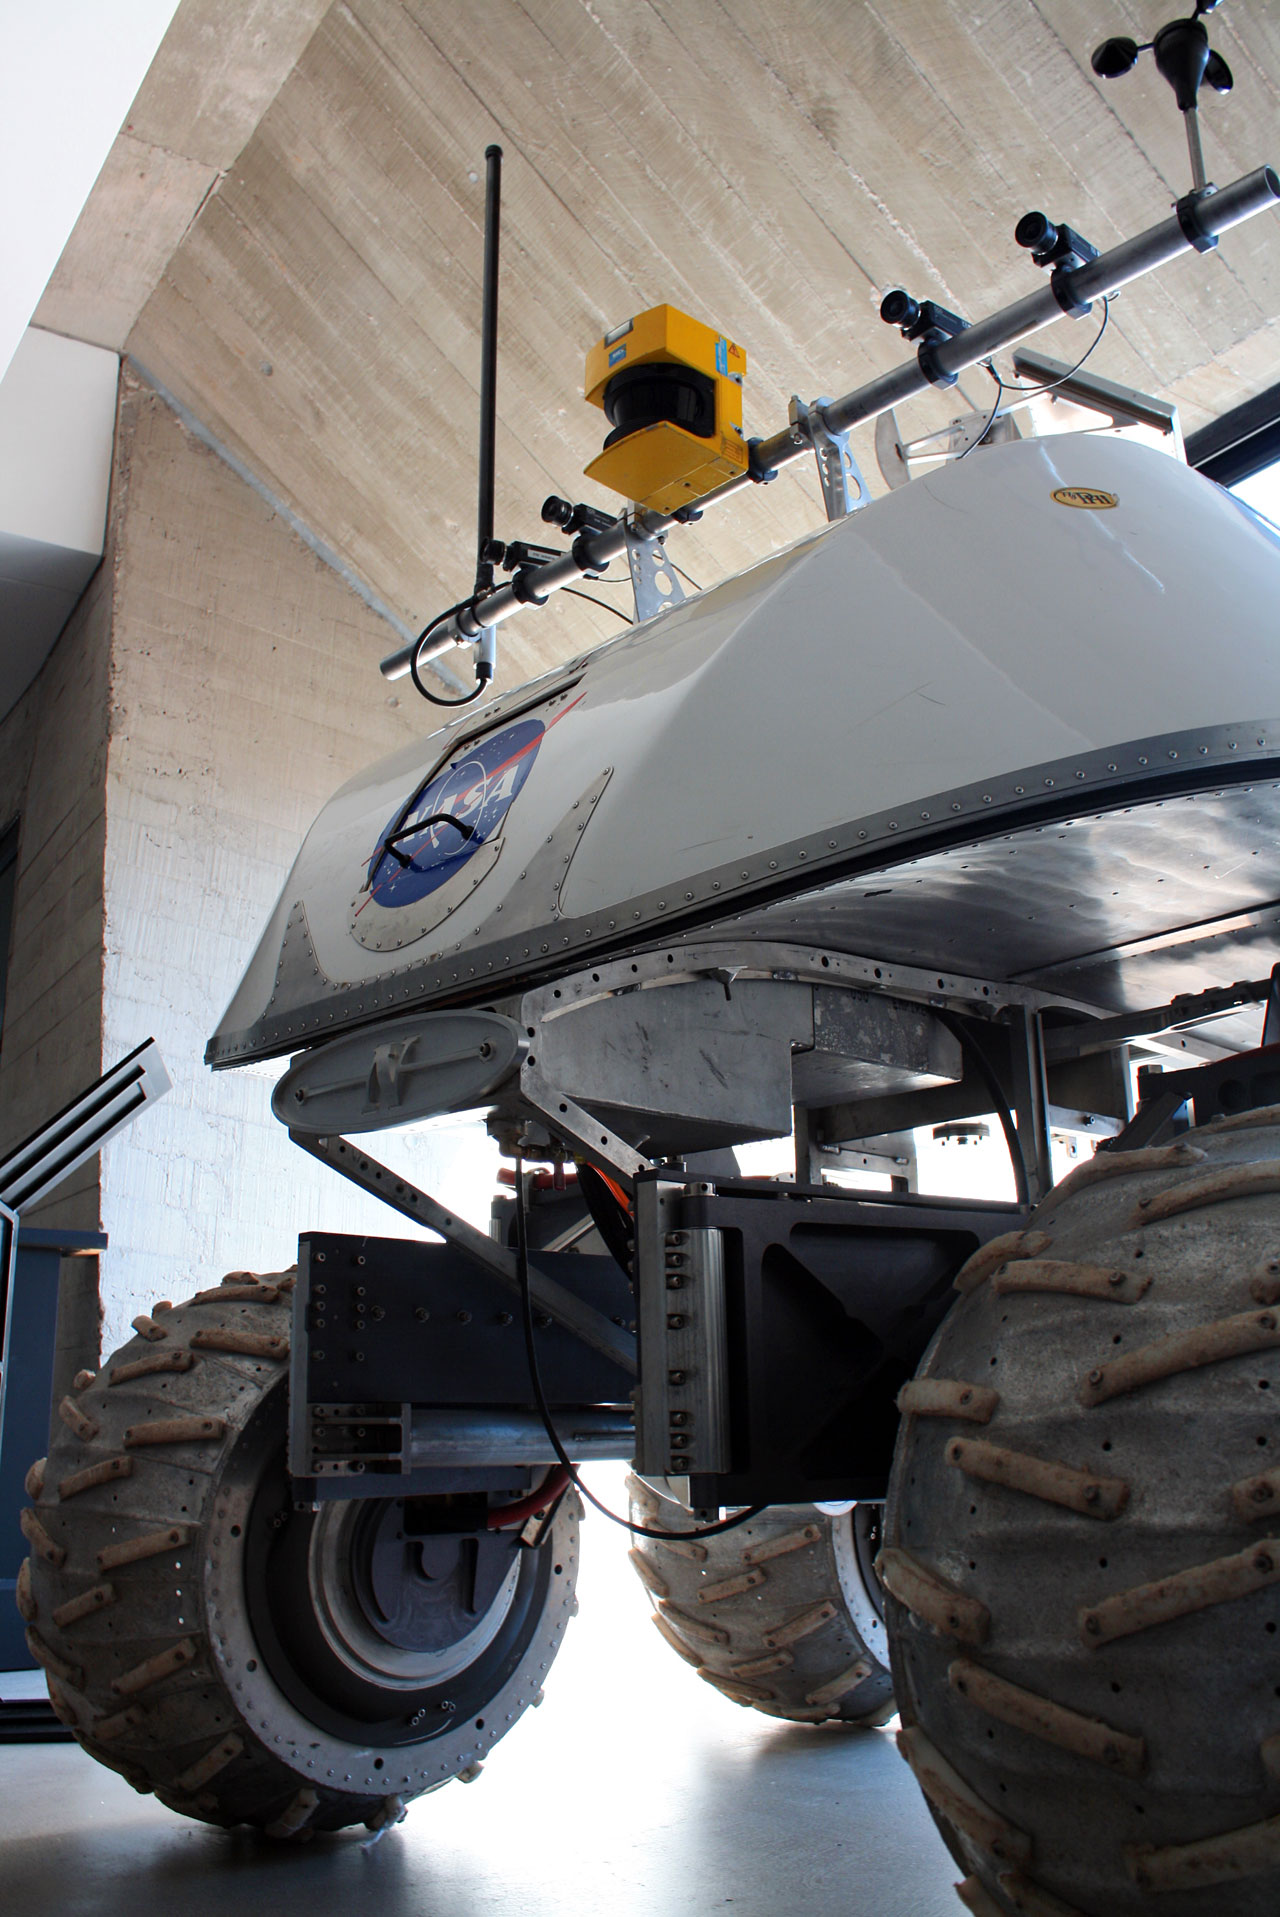 Mars Rover prototype at the Museum of the Atacama Desert